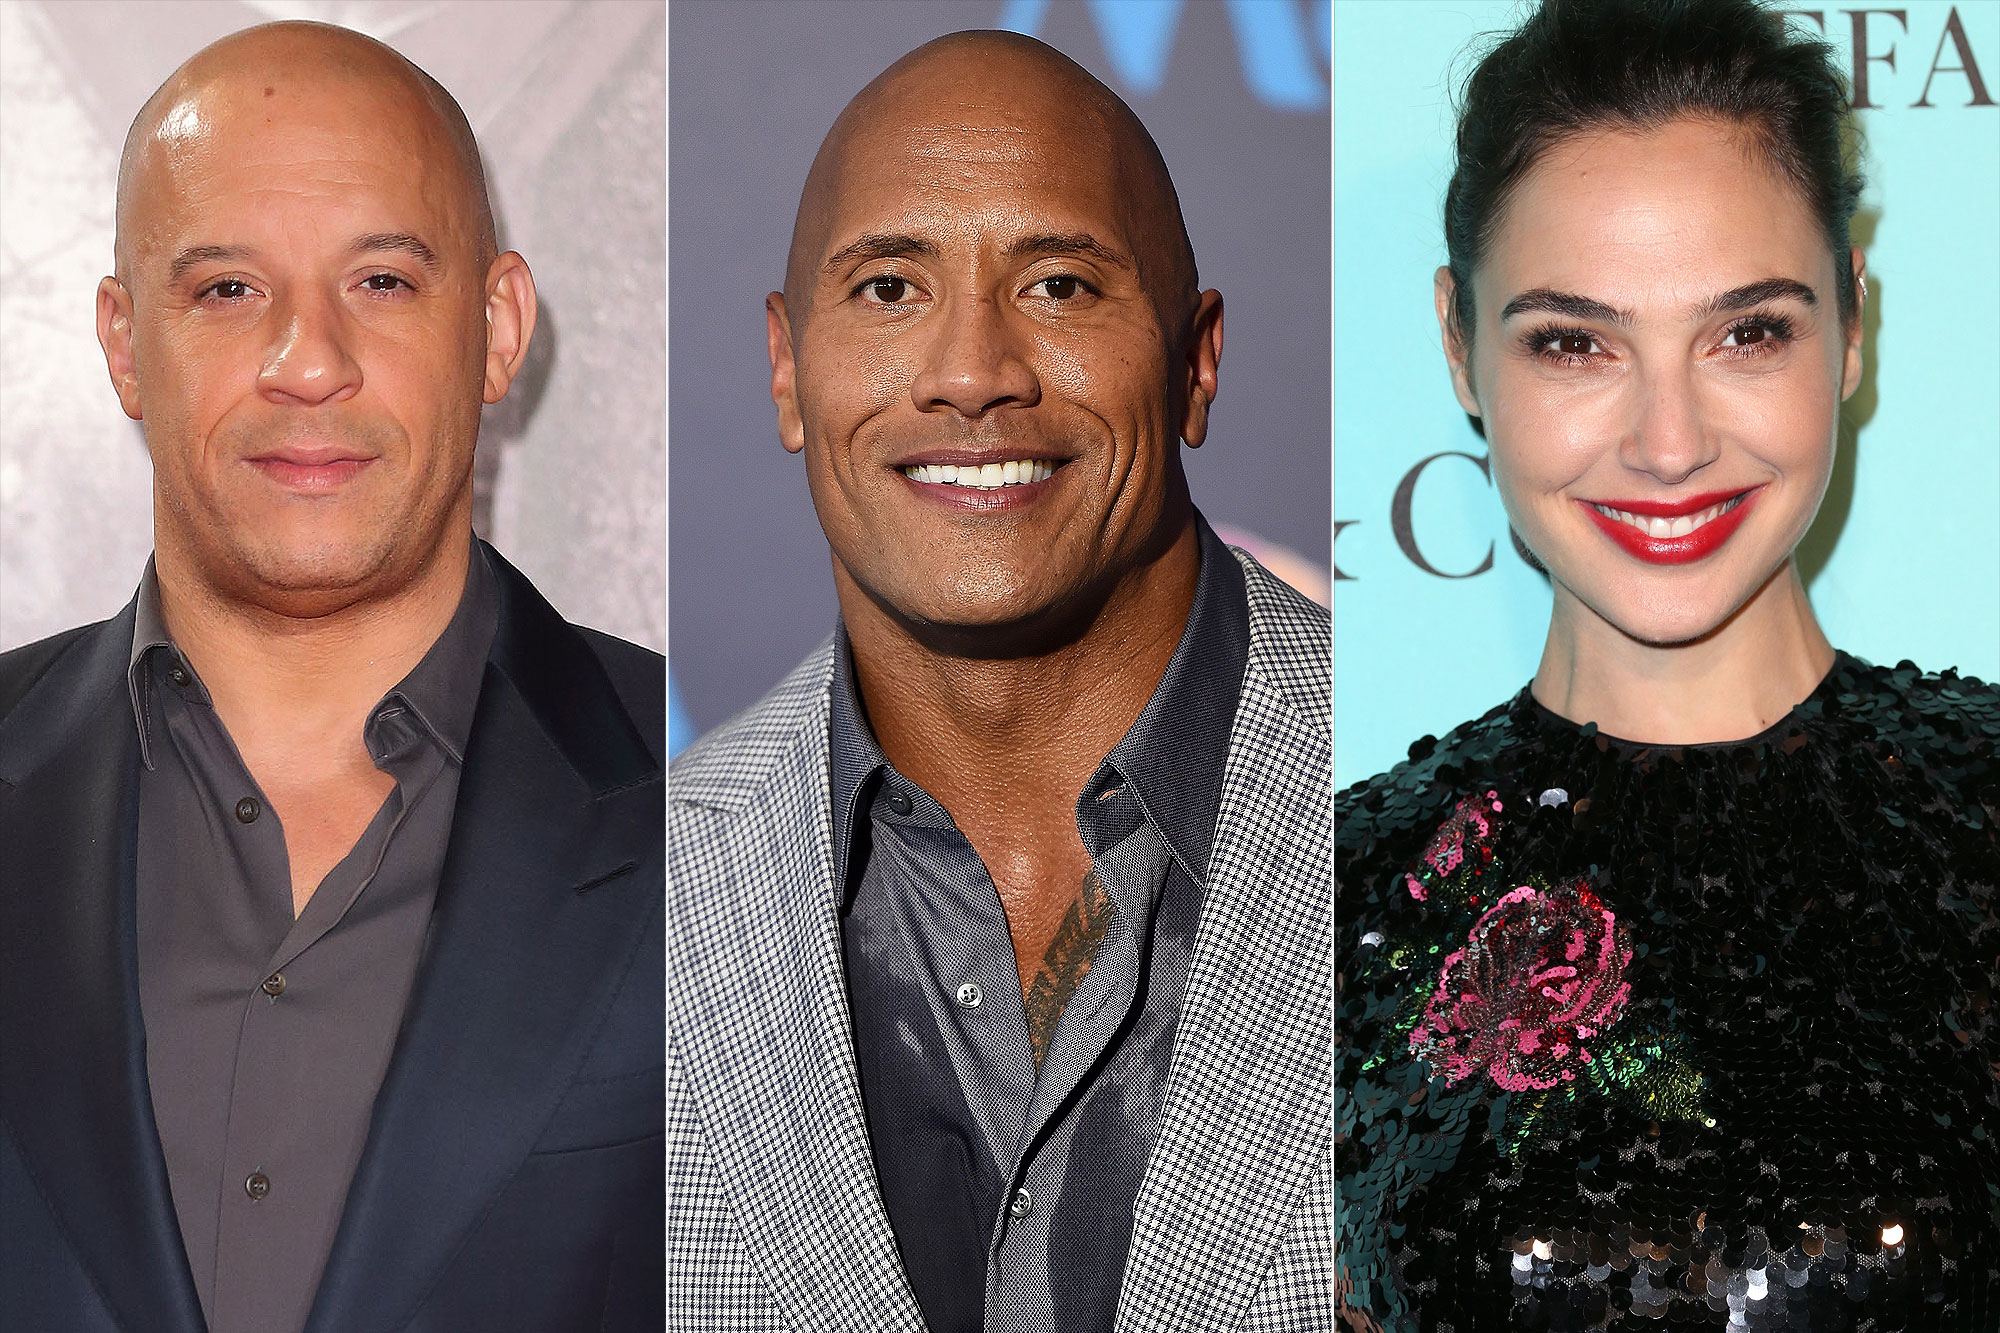 highest paid actors - Full List: Vin Diesel, Dwayne Johnson and Gal Gadot Named As Top-Grossing Actor For 2017